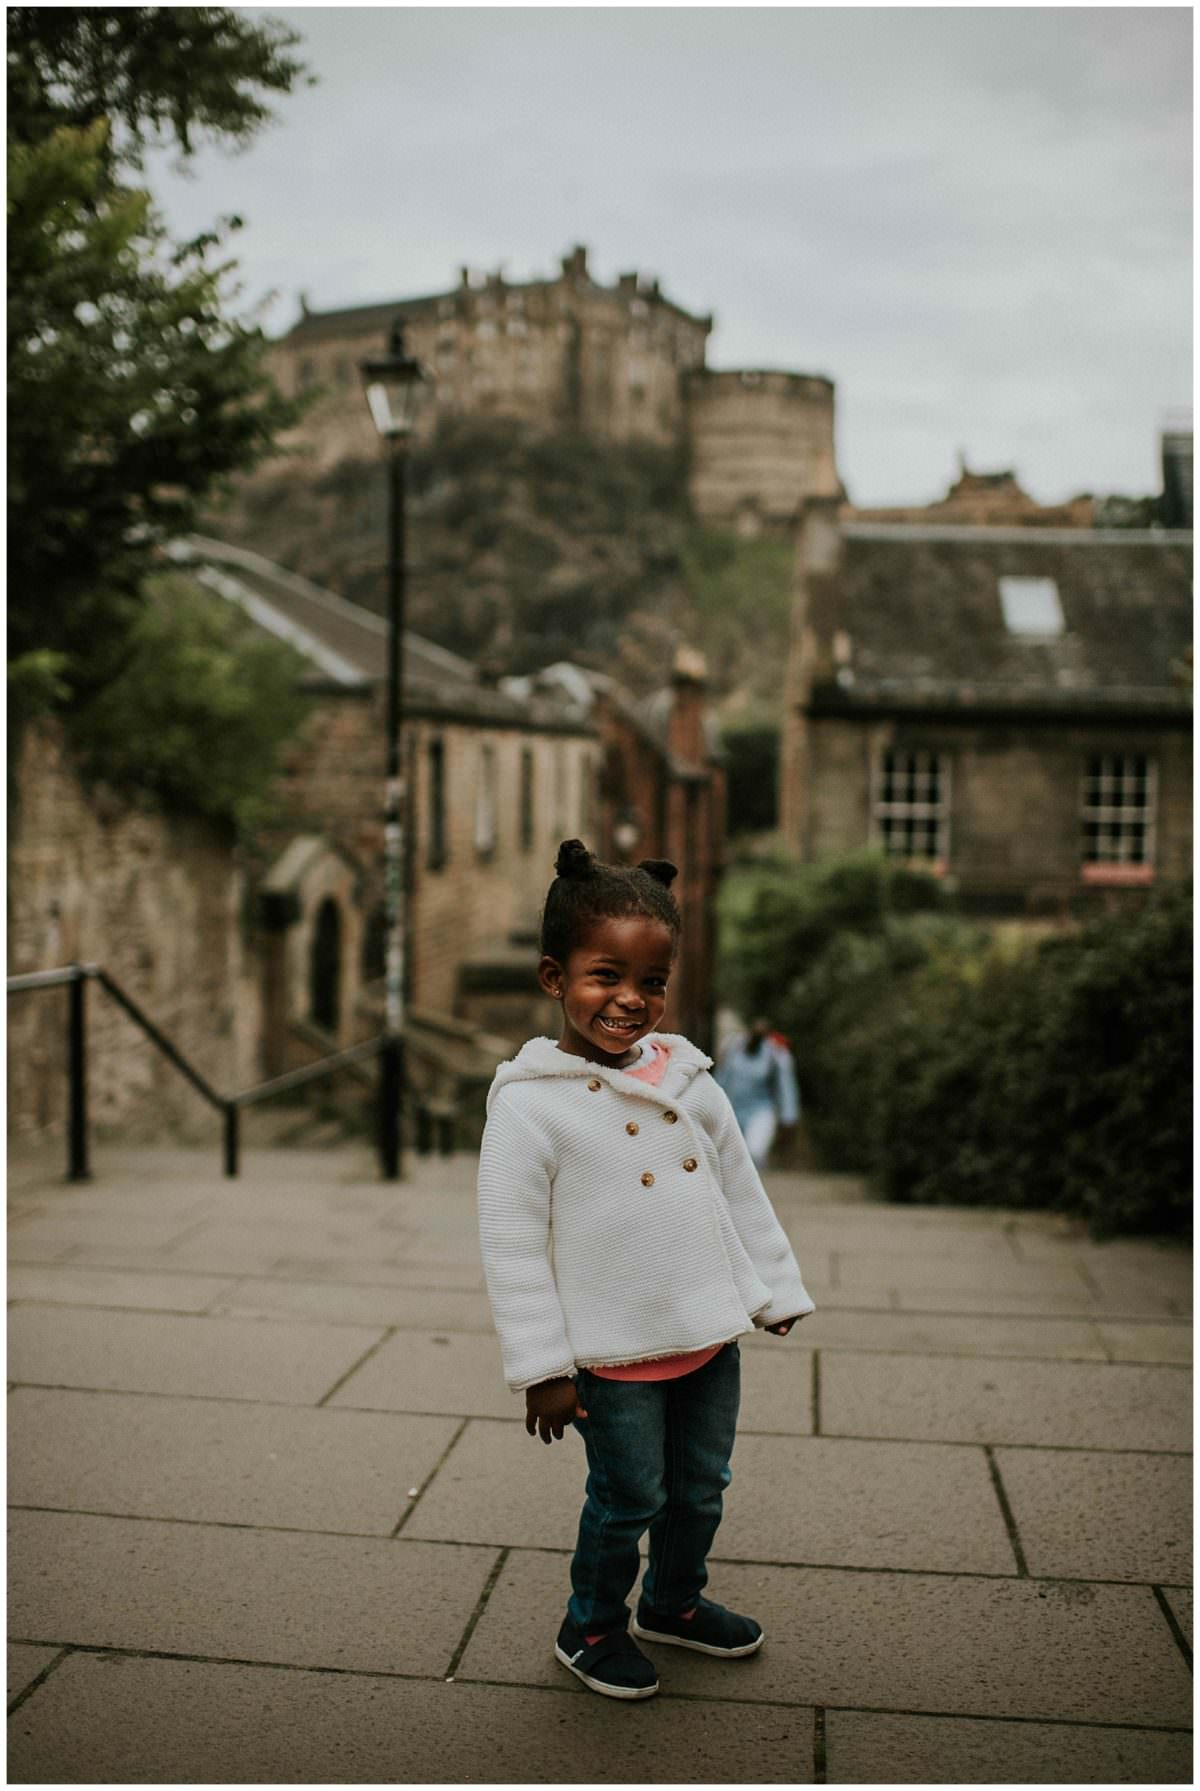 Scotland family photoshoot - Scotland family photographer